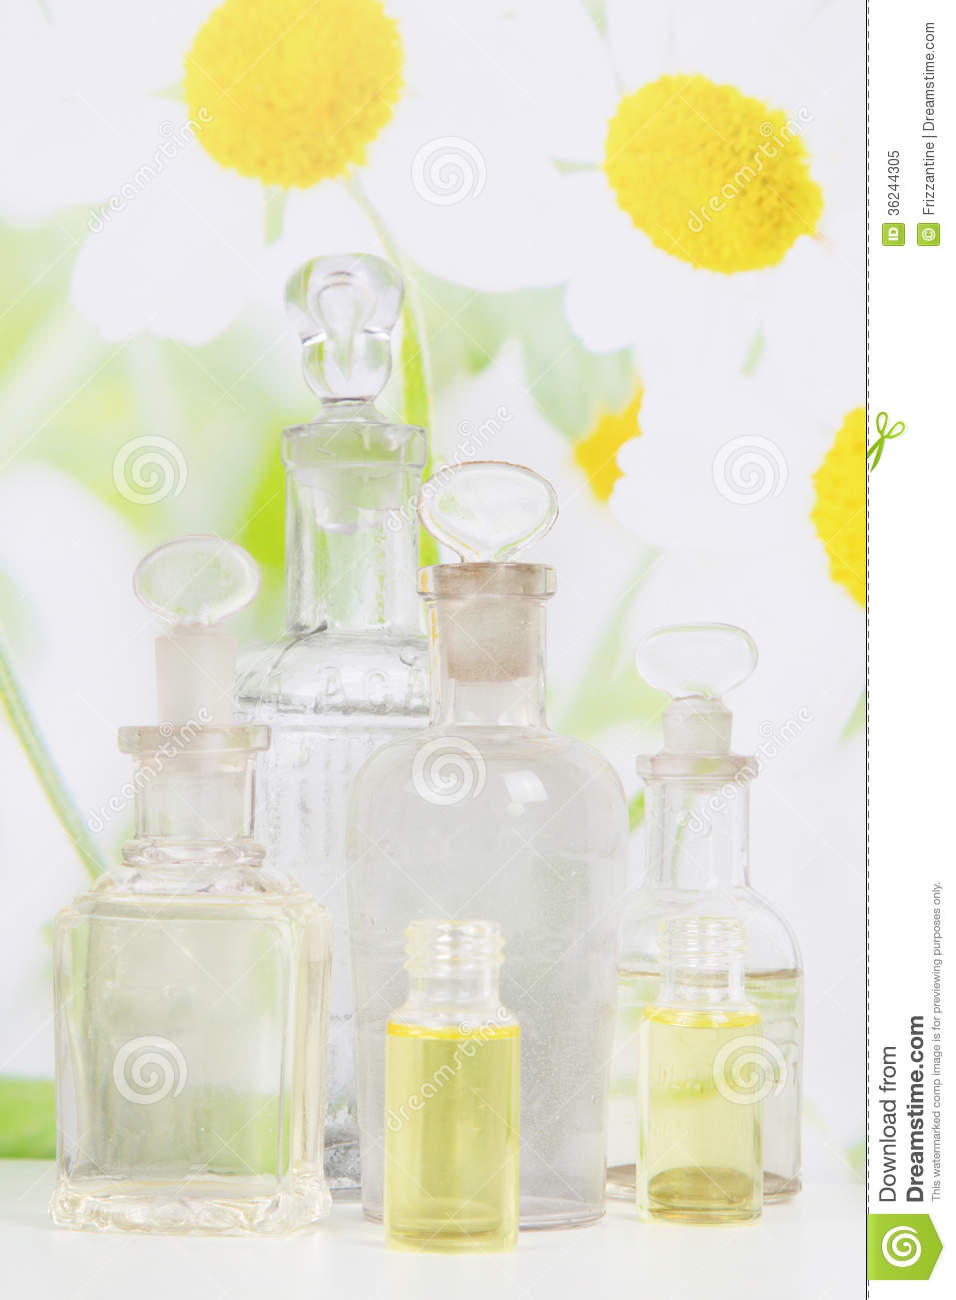 Oil And Camomile Spa Decoration In White And Yellow